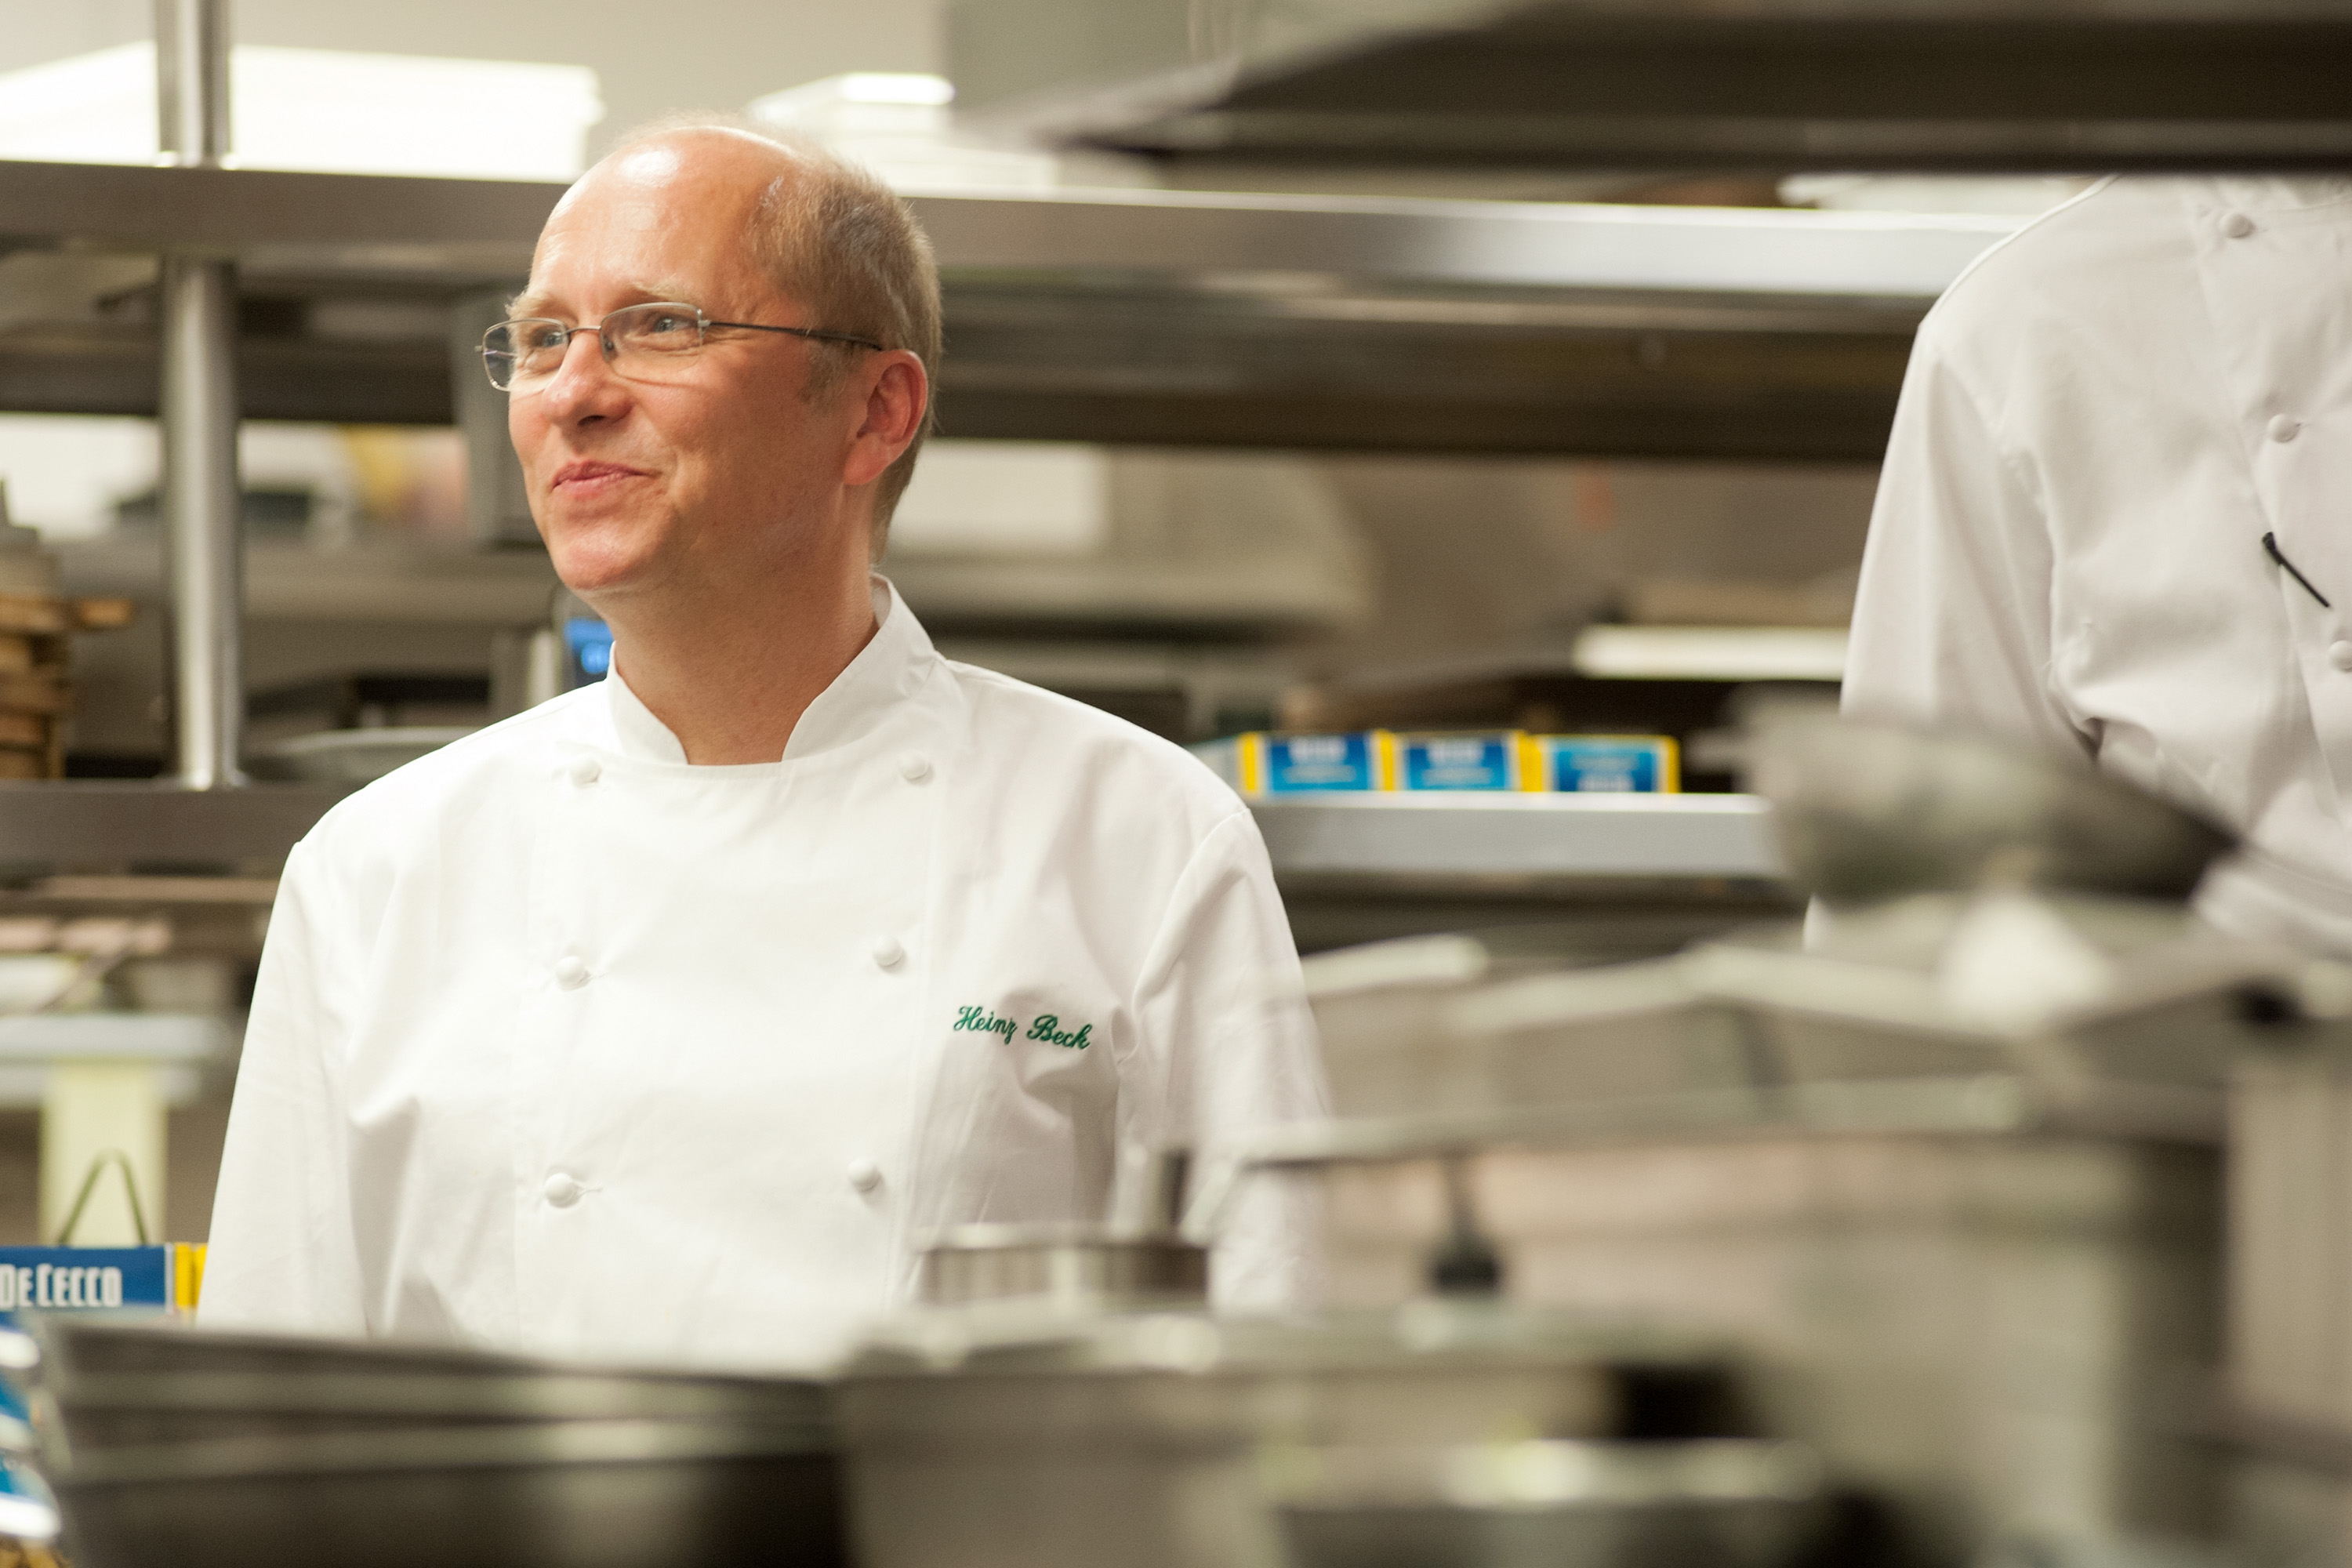 Heinz Beck Is The Roman Master Chef You Probably Don't